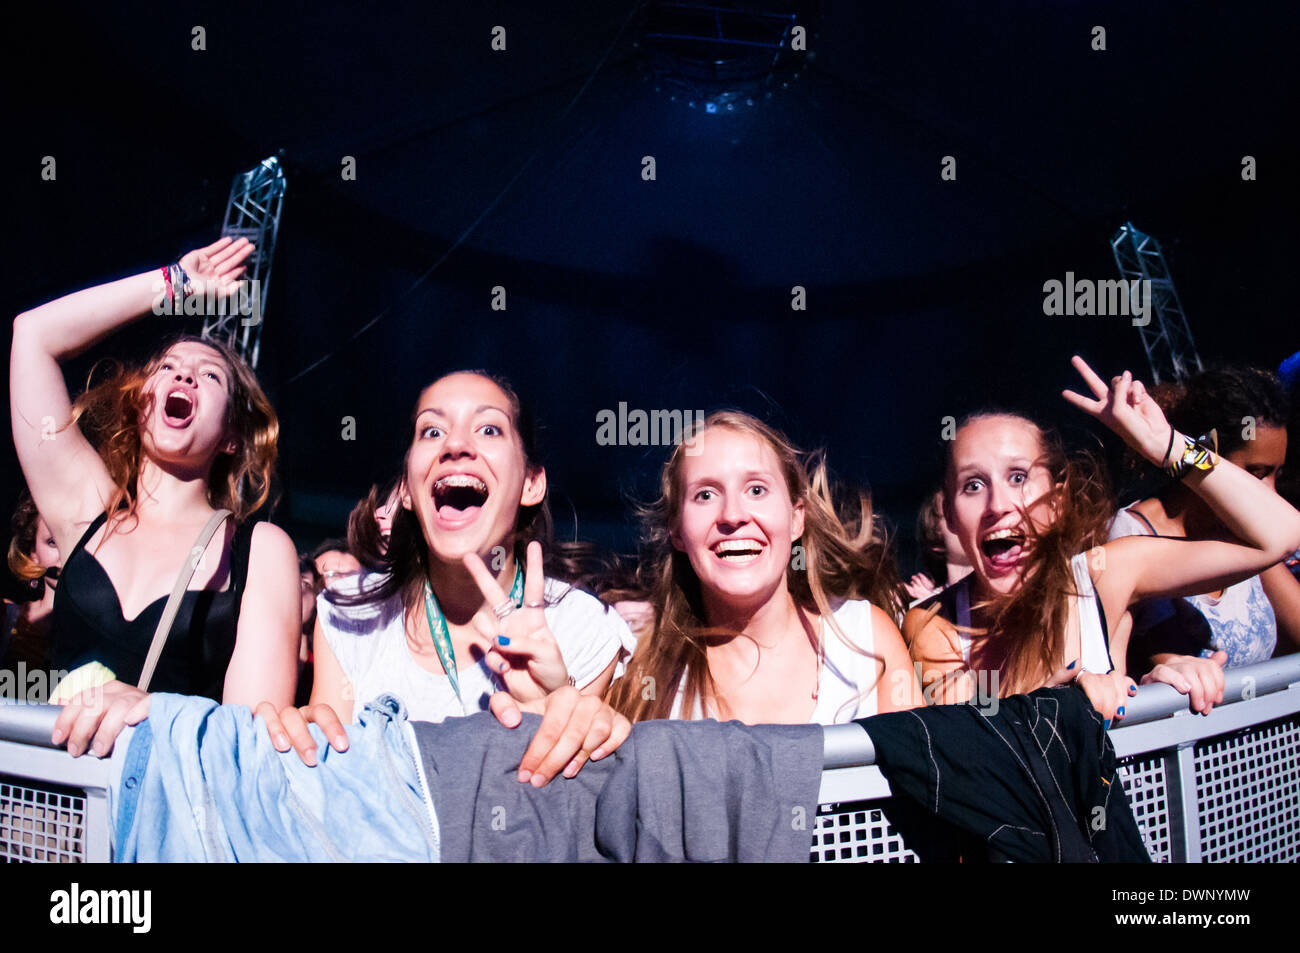 Group of 4 young girls ecstatic in the first row at a Bažant Pohoda music festival - Stock Image